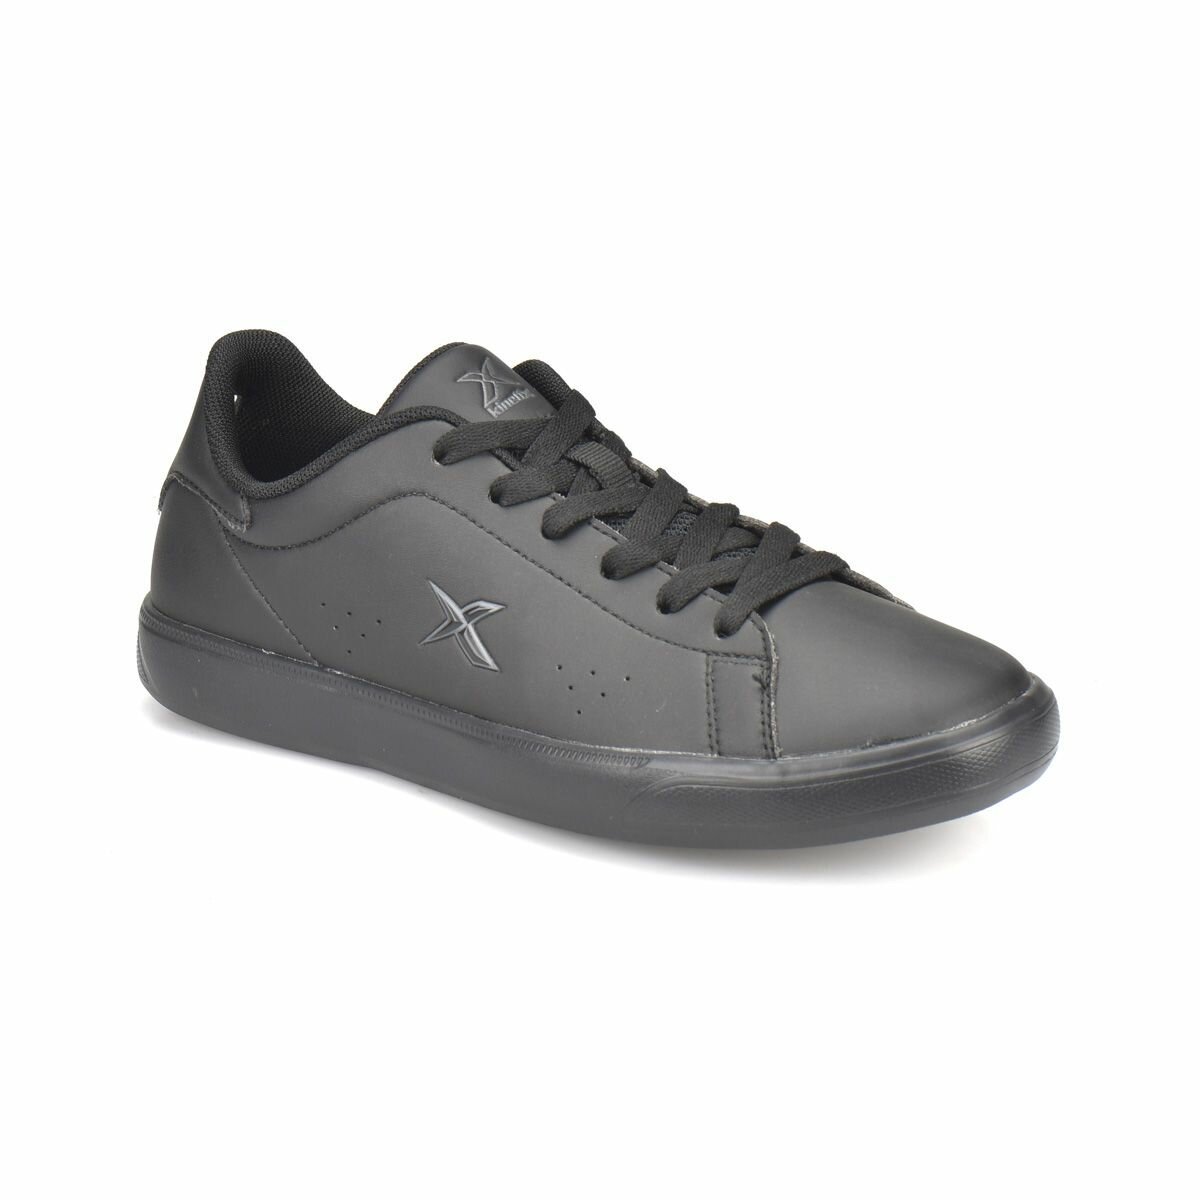 FLO GRATO W Black Women 'S Sneaker Shoes KINETIX